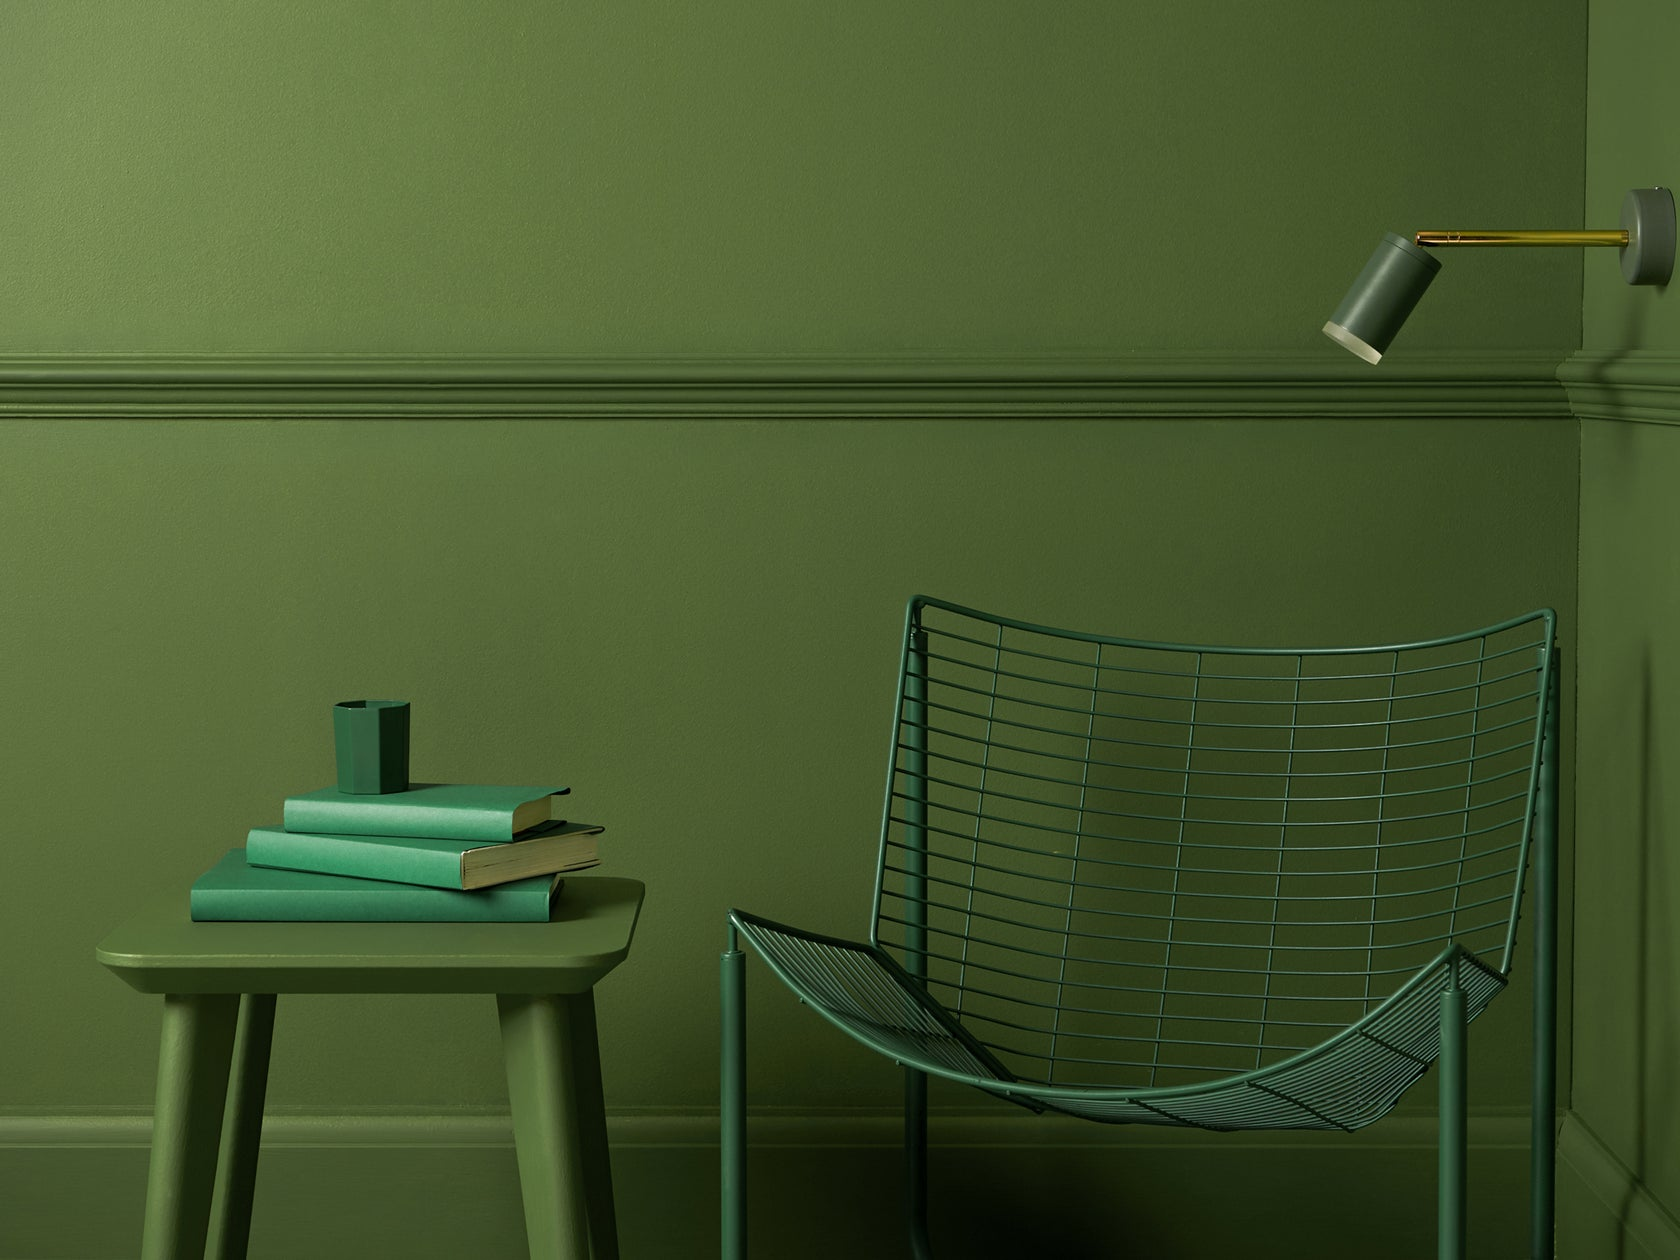 LED task wall light olive | context | houseof.com